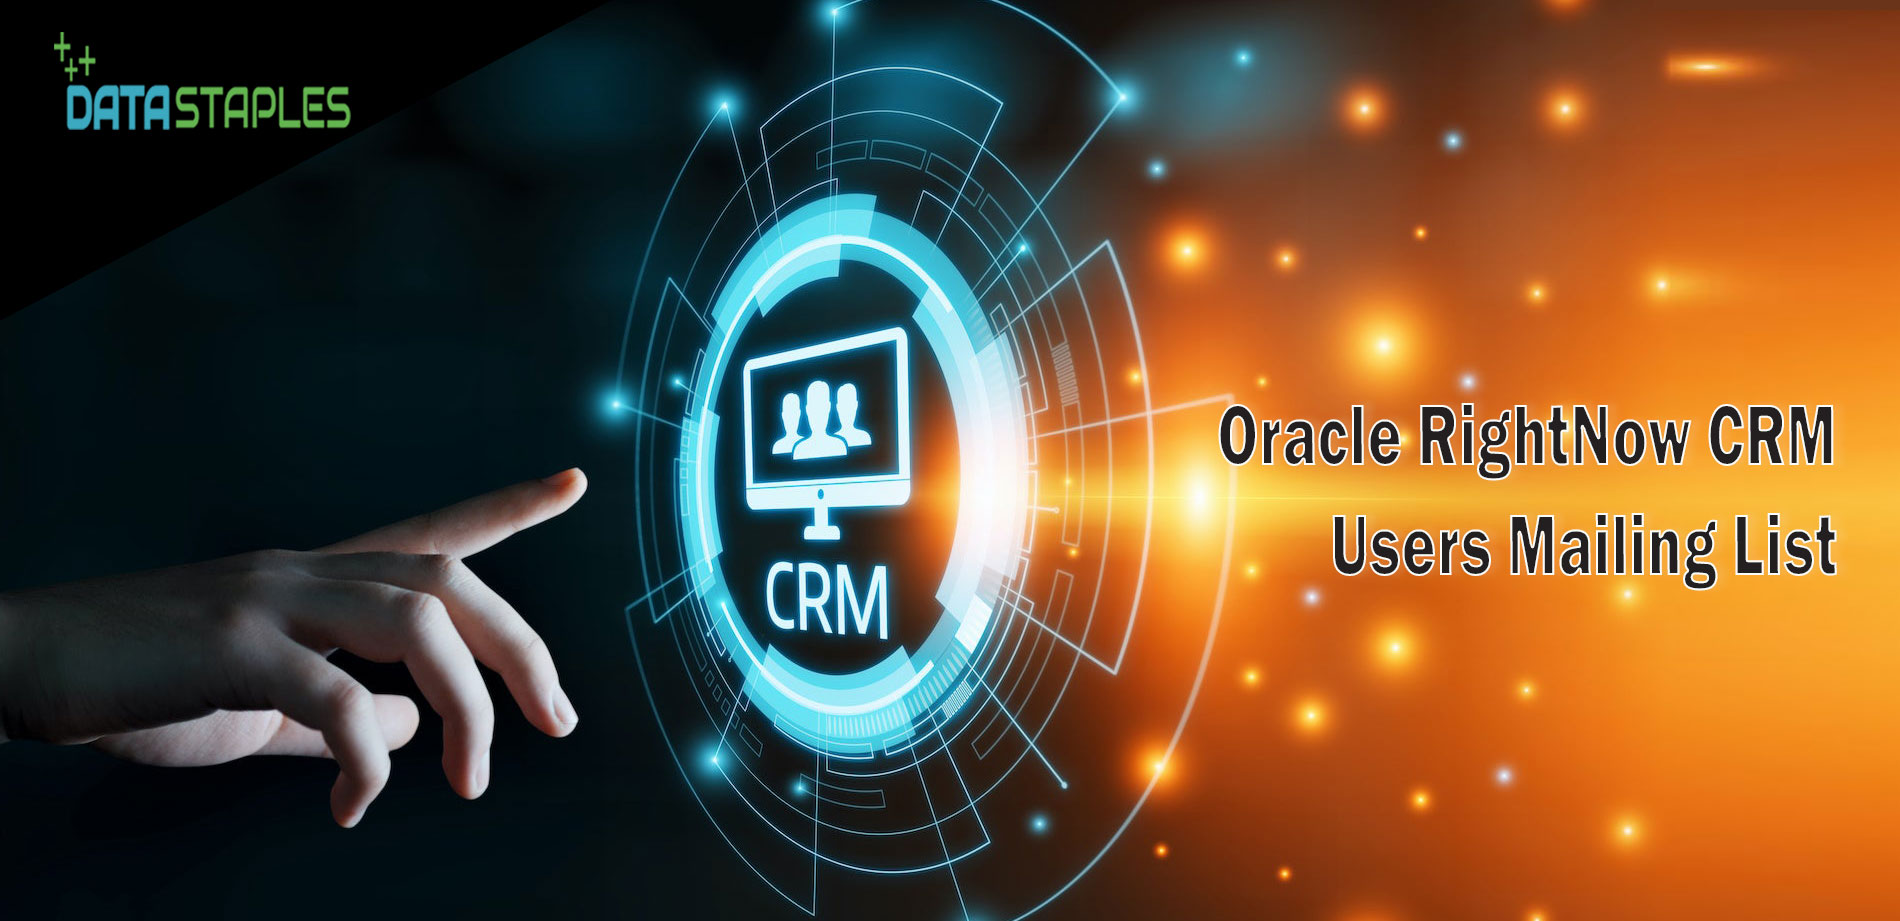 Oracle RightNow CRM Users Mailing List | DataStaples